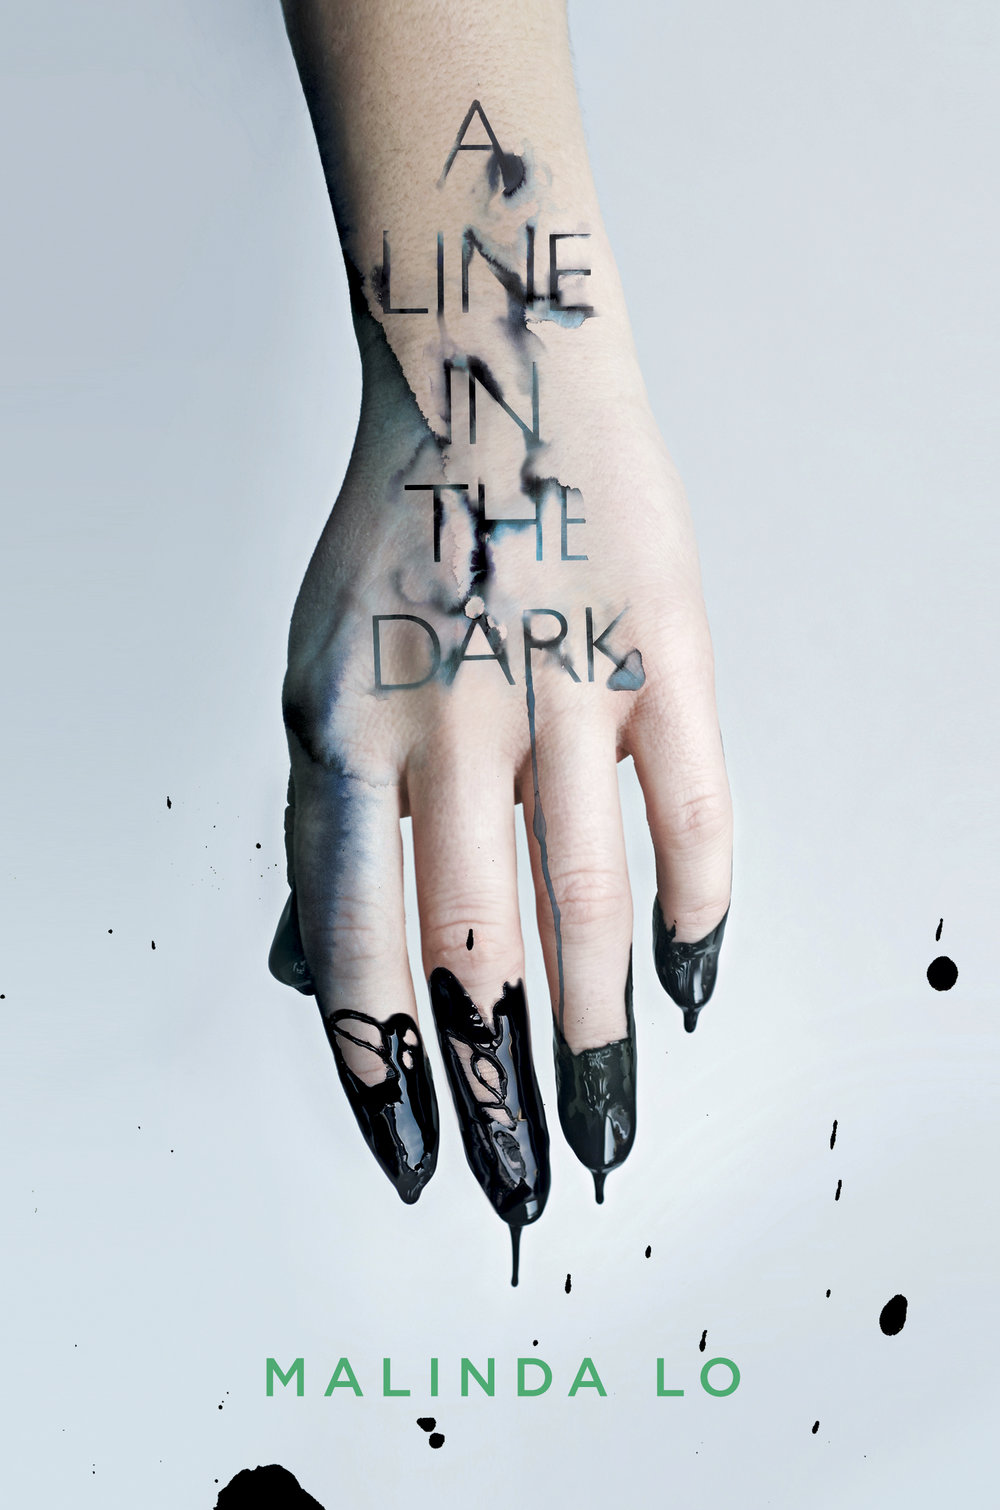 malinda-lo-line-in-the-dark.jpg